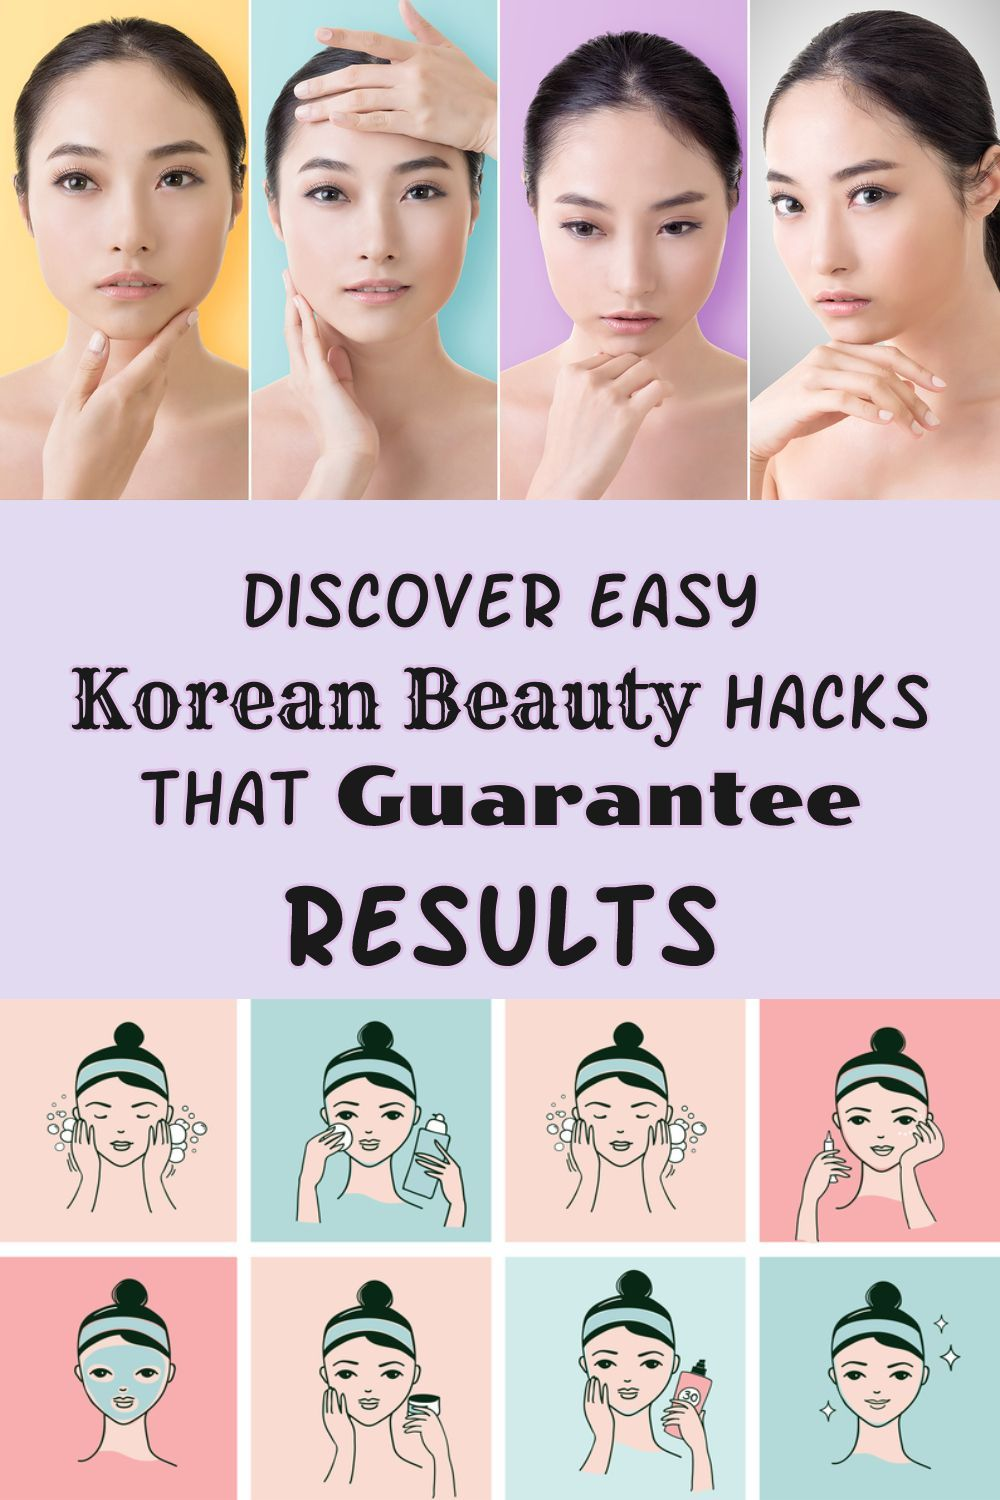 Discover Easy Korean Beauty Hacks That Guarantee Results